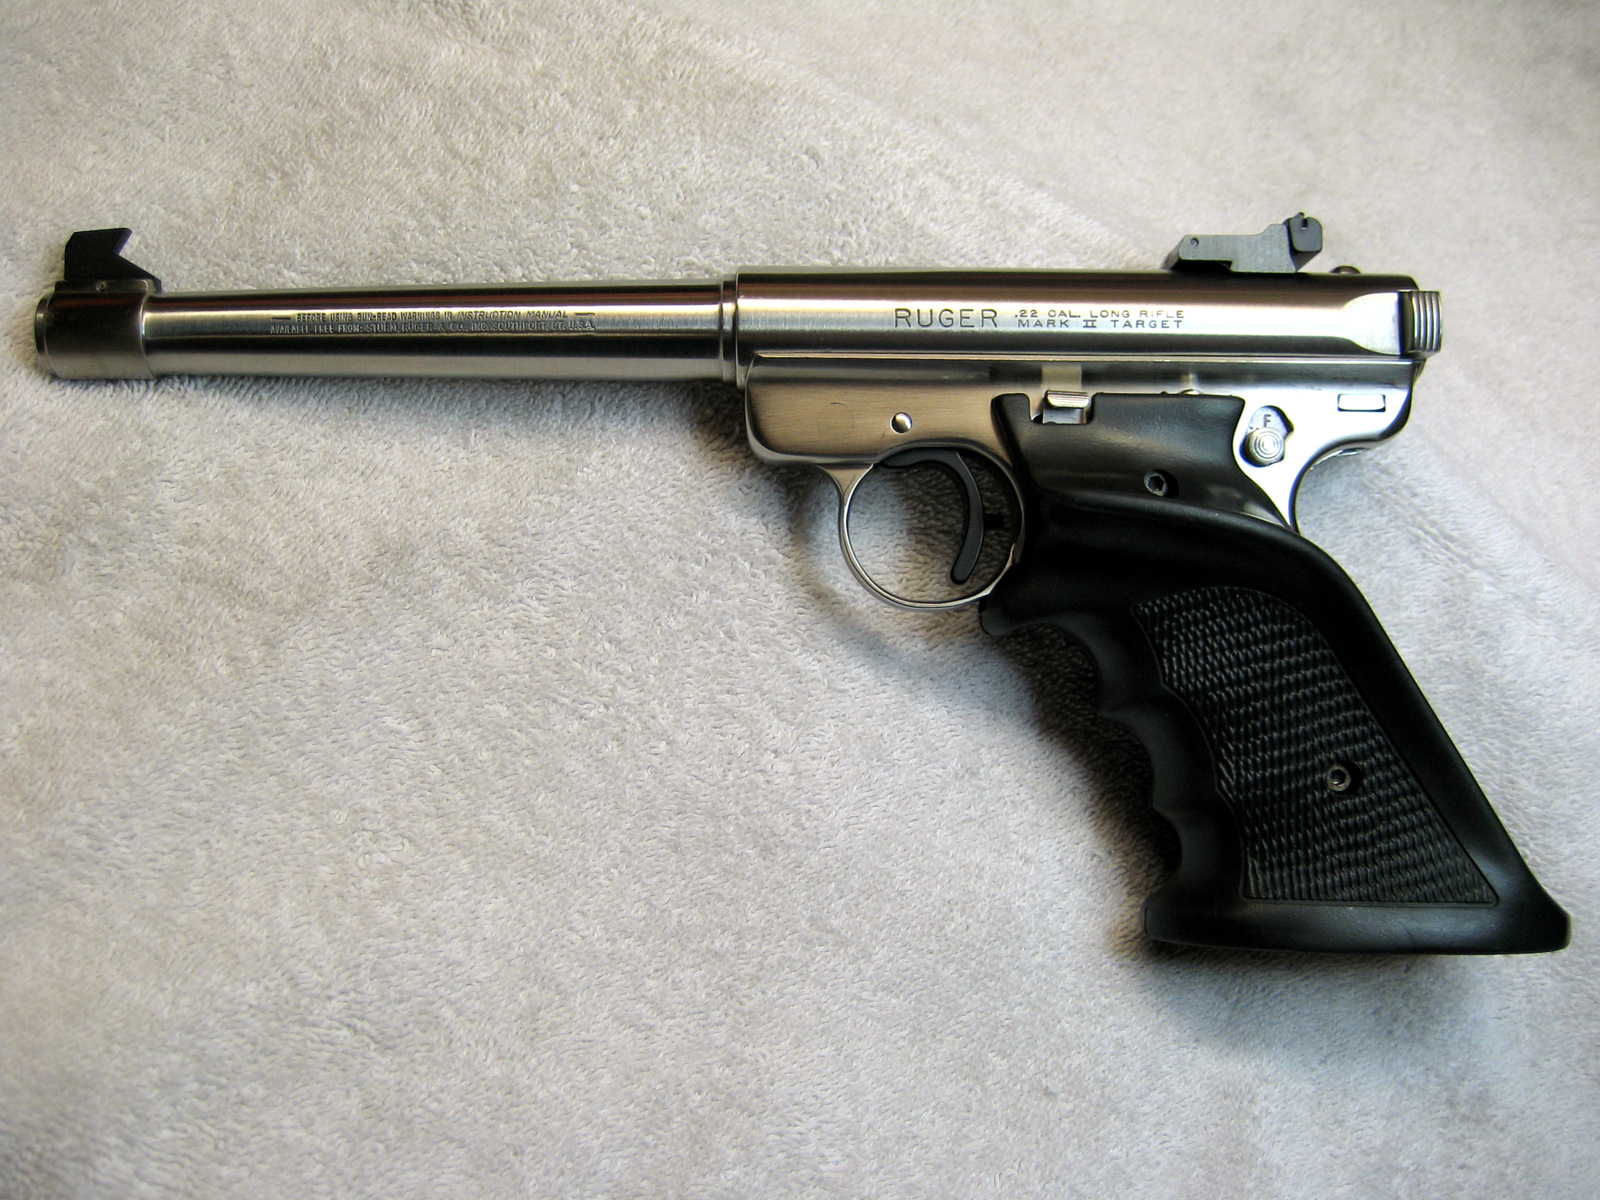 KMK-678...Like New!-ruger-mkii-kmk-678-3.jpg